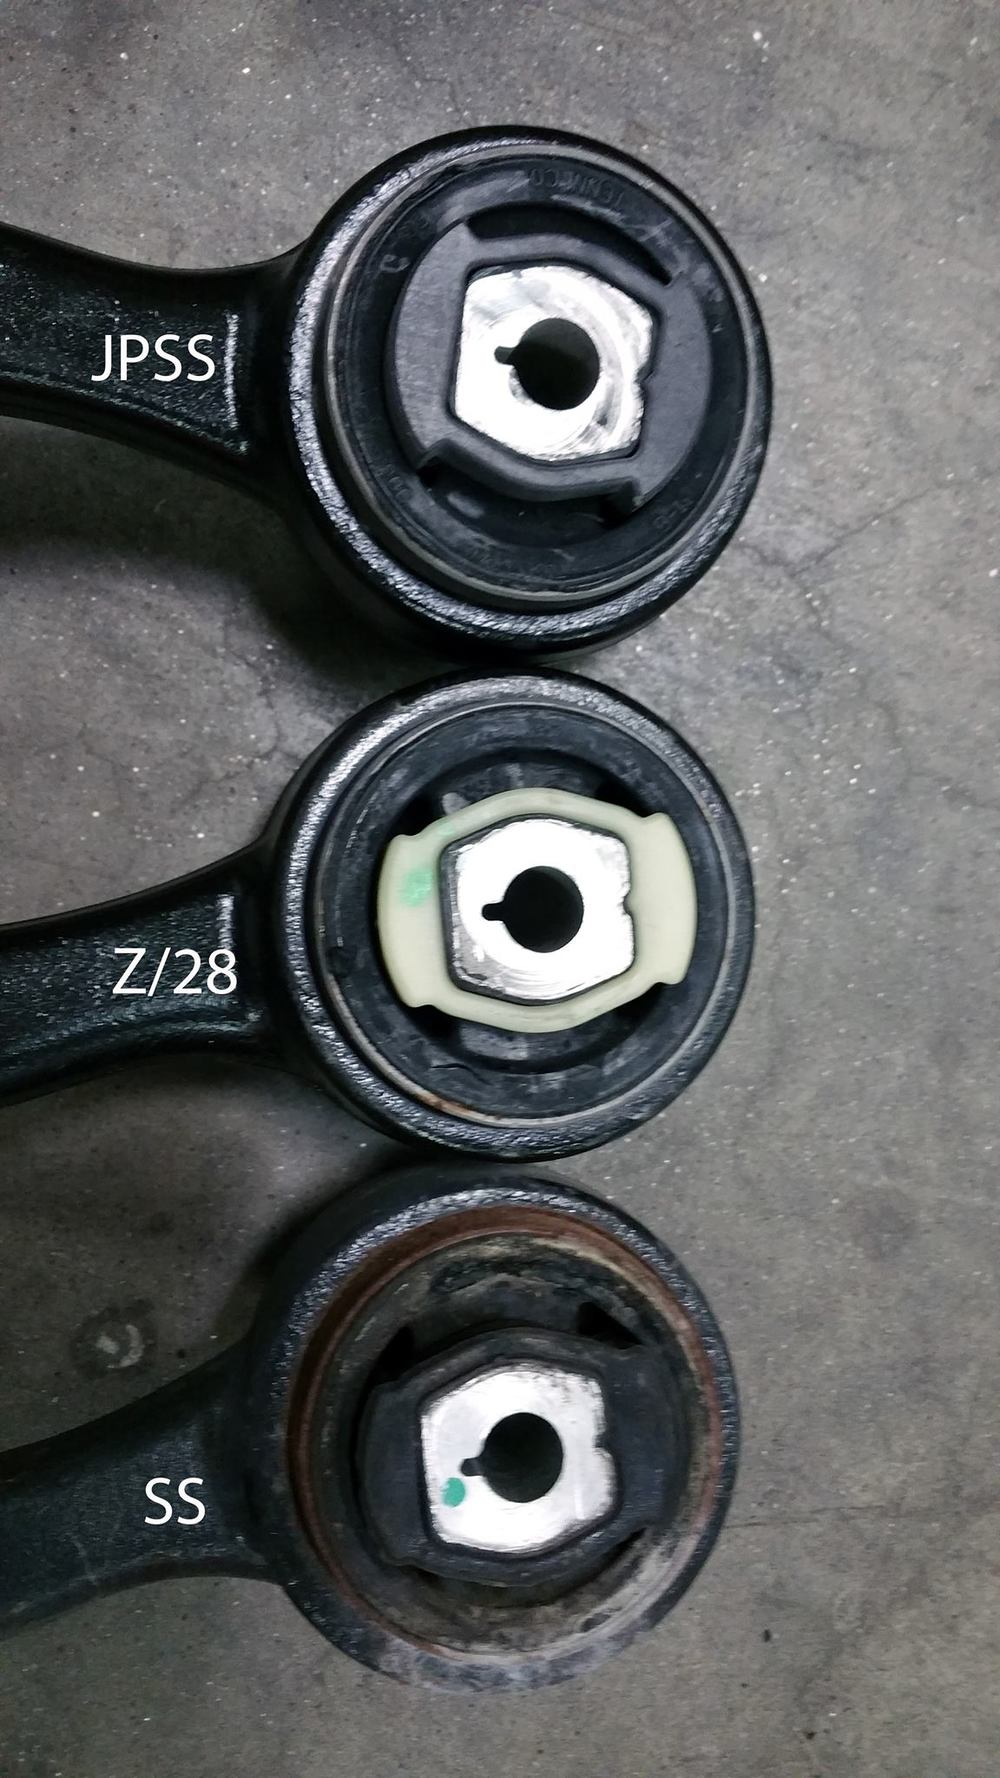 The differences in size are very clear. The SS insert is a moderately soft rubber. The Z/28 is Delrin like. The JPSS Black Magic Bushing insert is Delrin, larger than the Z/28 insert with a precision fit.